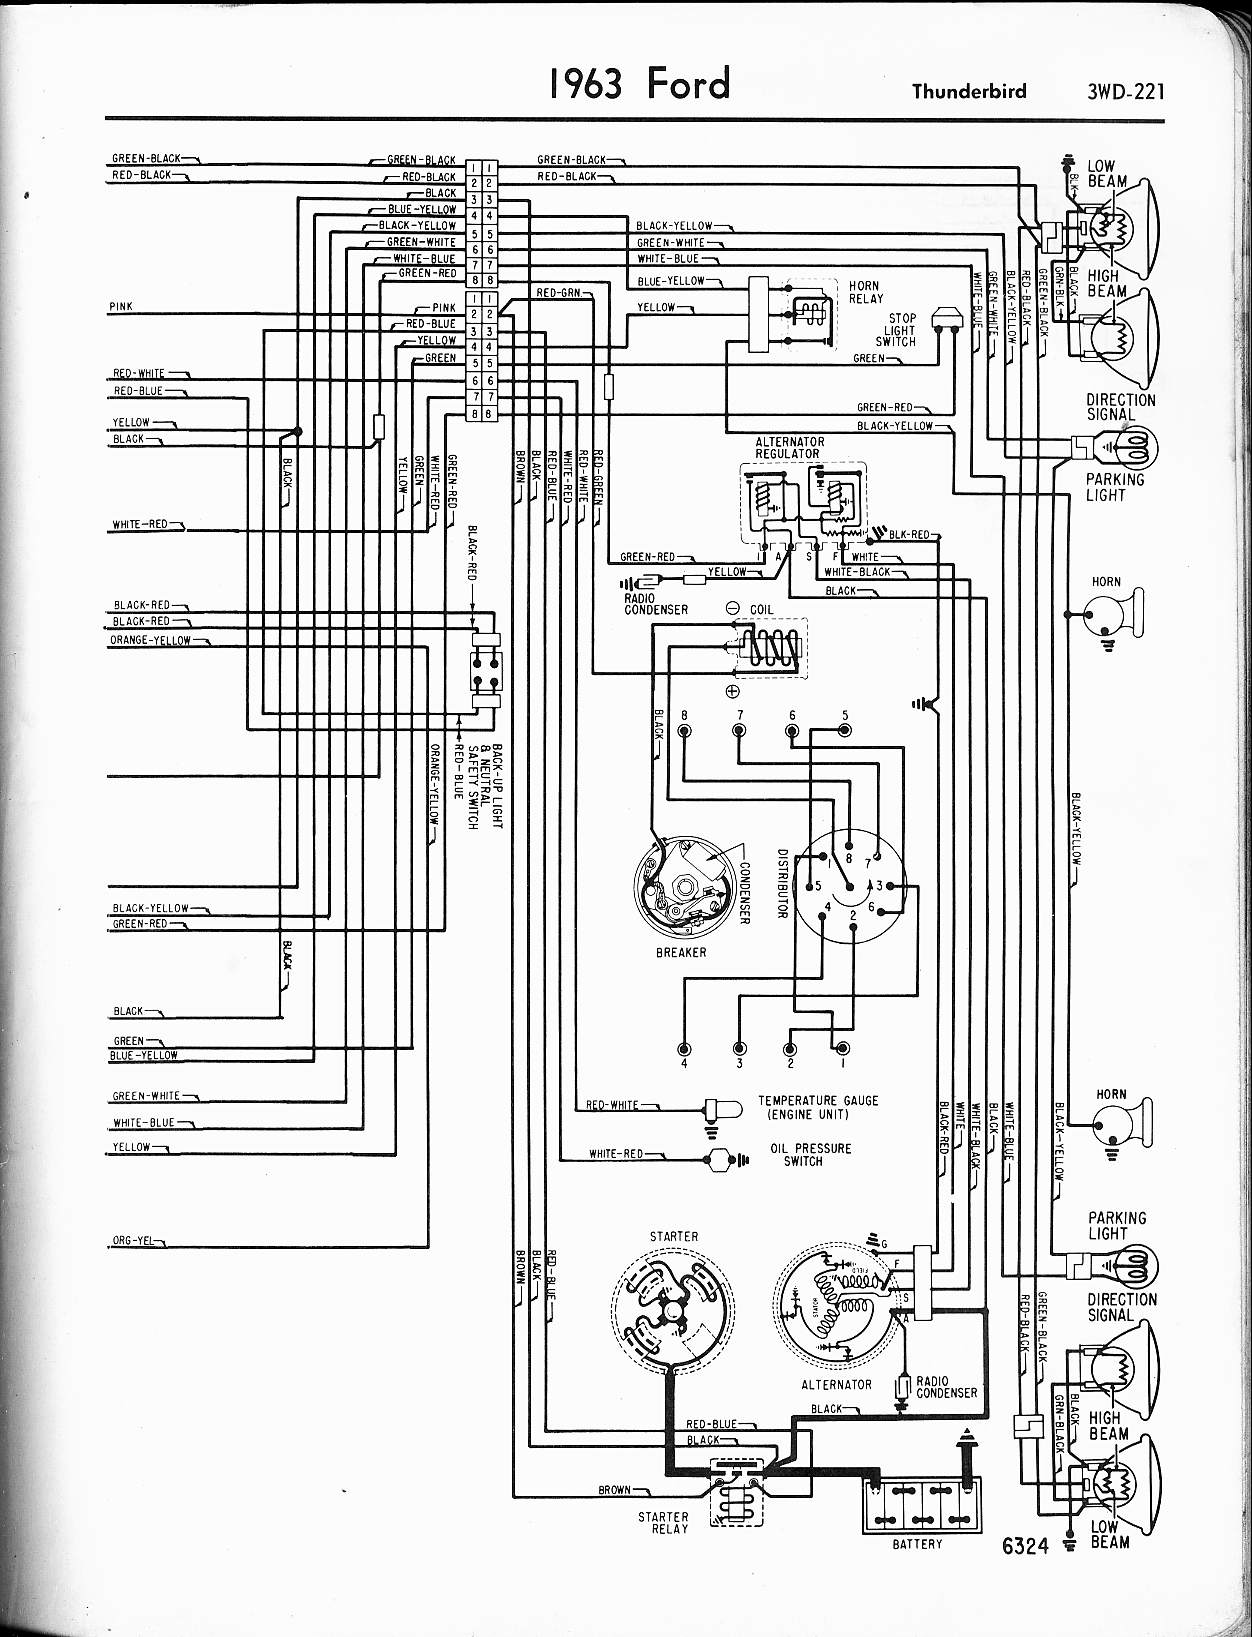 1963 ford thunderbird wiring trusted wiring diagram u2022 rh soulmatestyle co